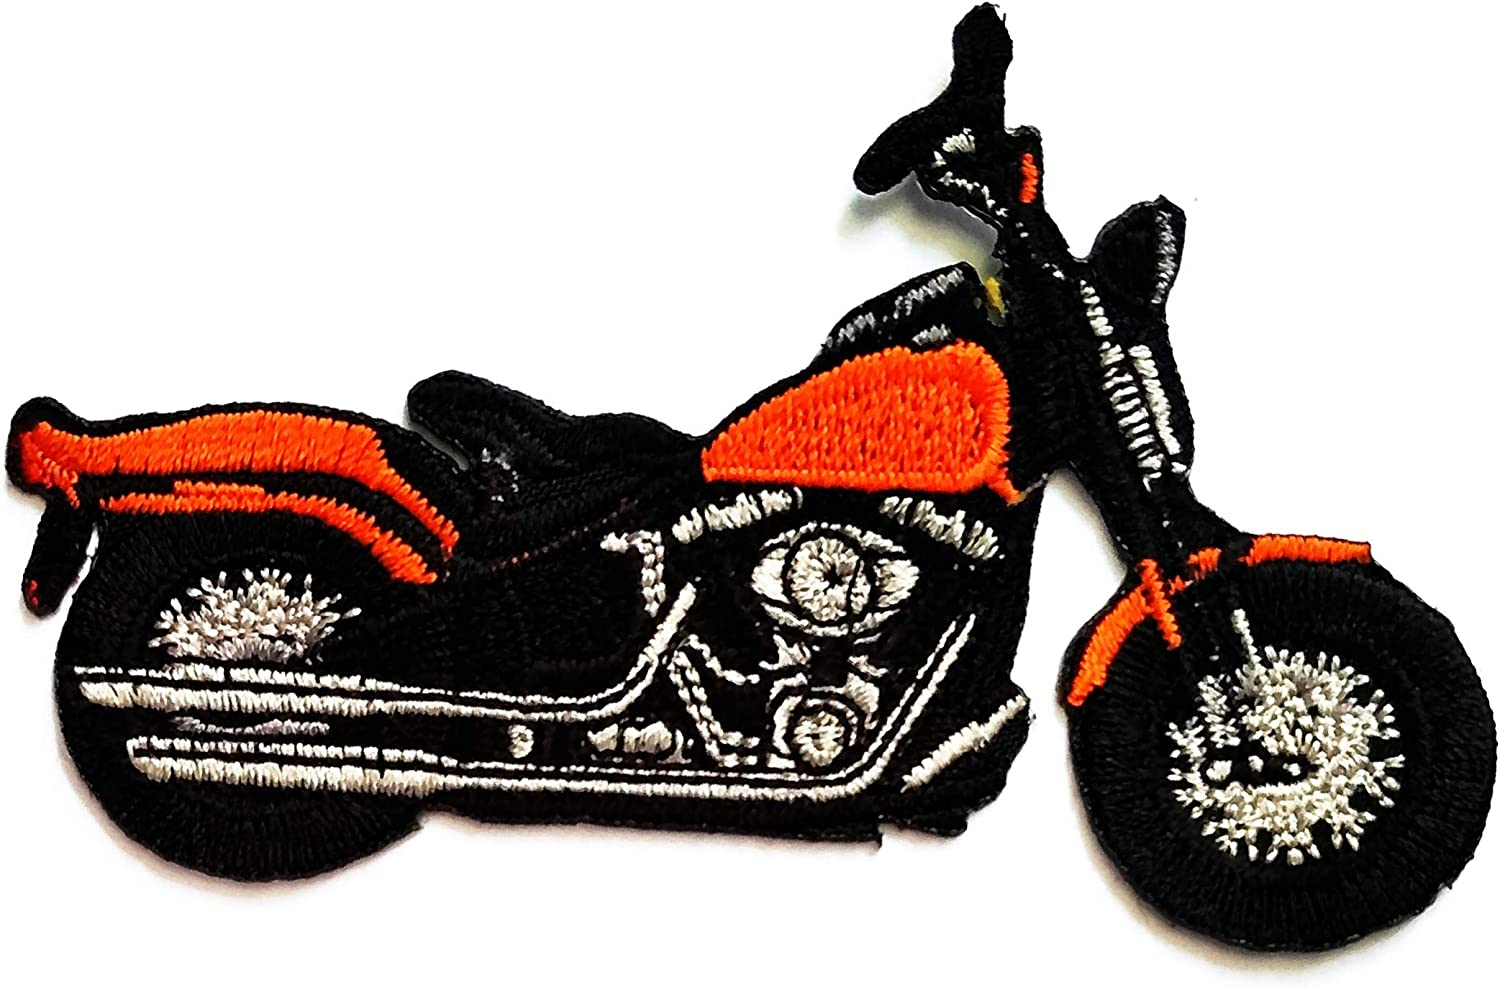 Nipitshop Patches Blue Motorcycle Bike Chopper Classic Design Motorcycle Vintage Cartoon Embroidered Patches Embroidery Patches Iron On Patches Sew On Applique Patch for Men Women Boys Girls Kid